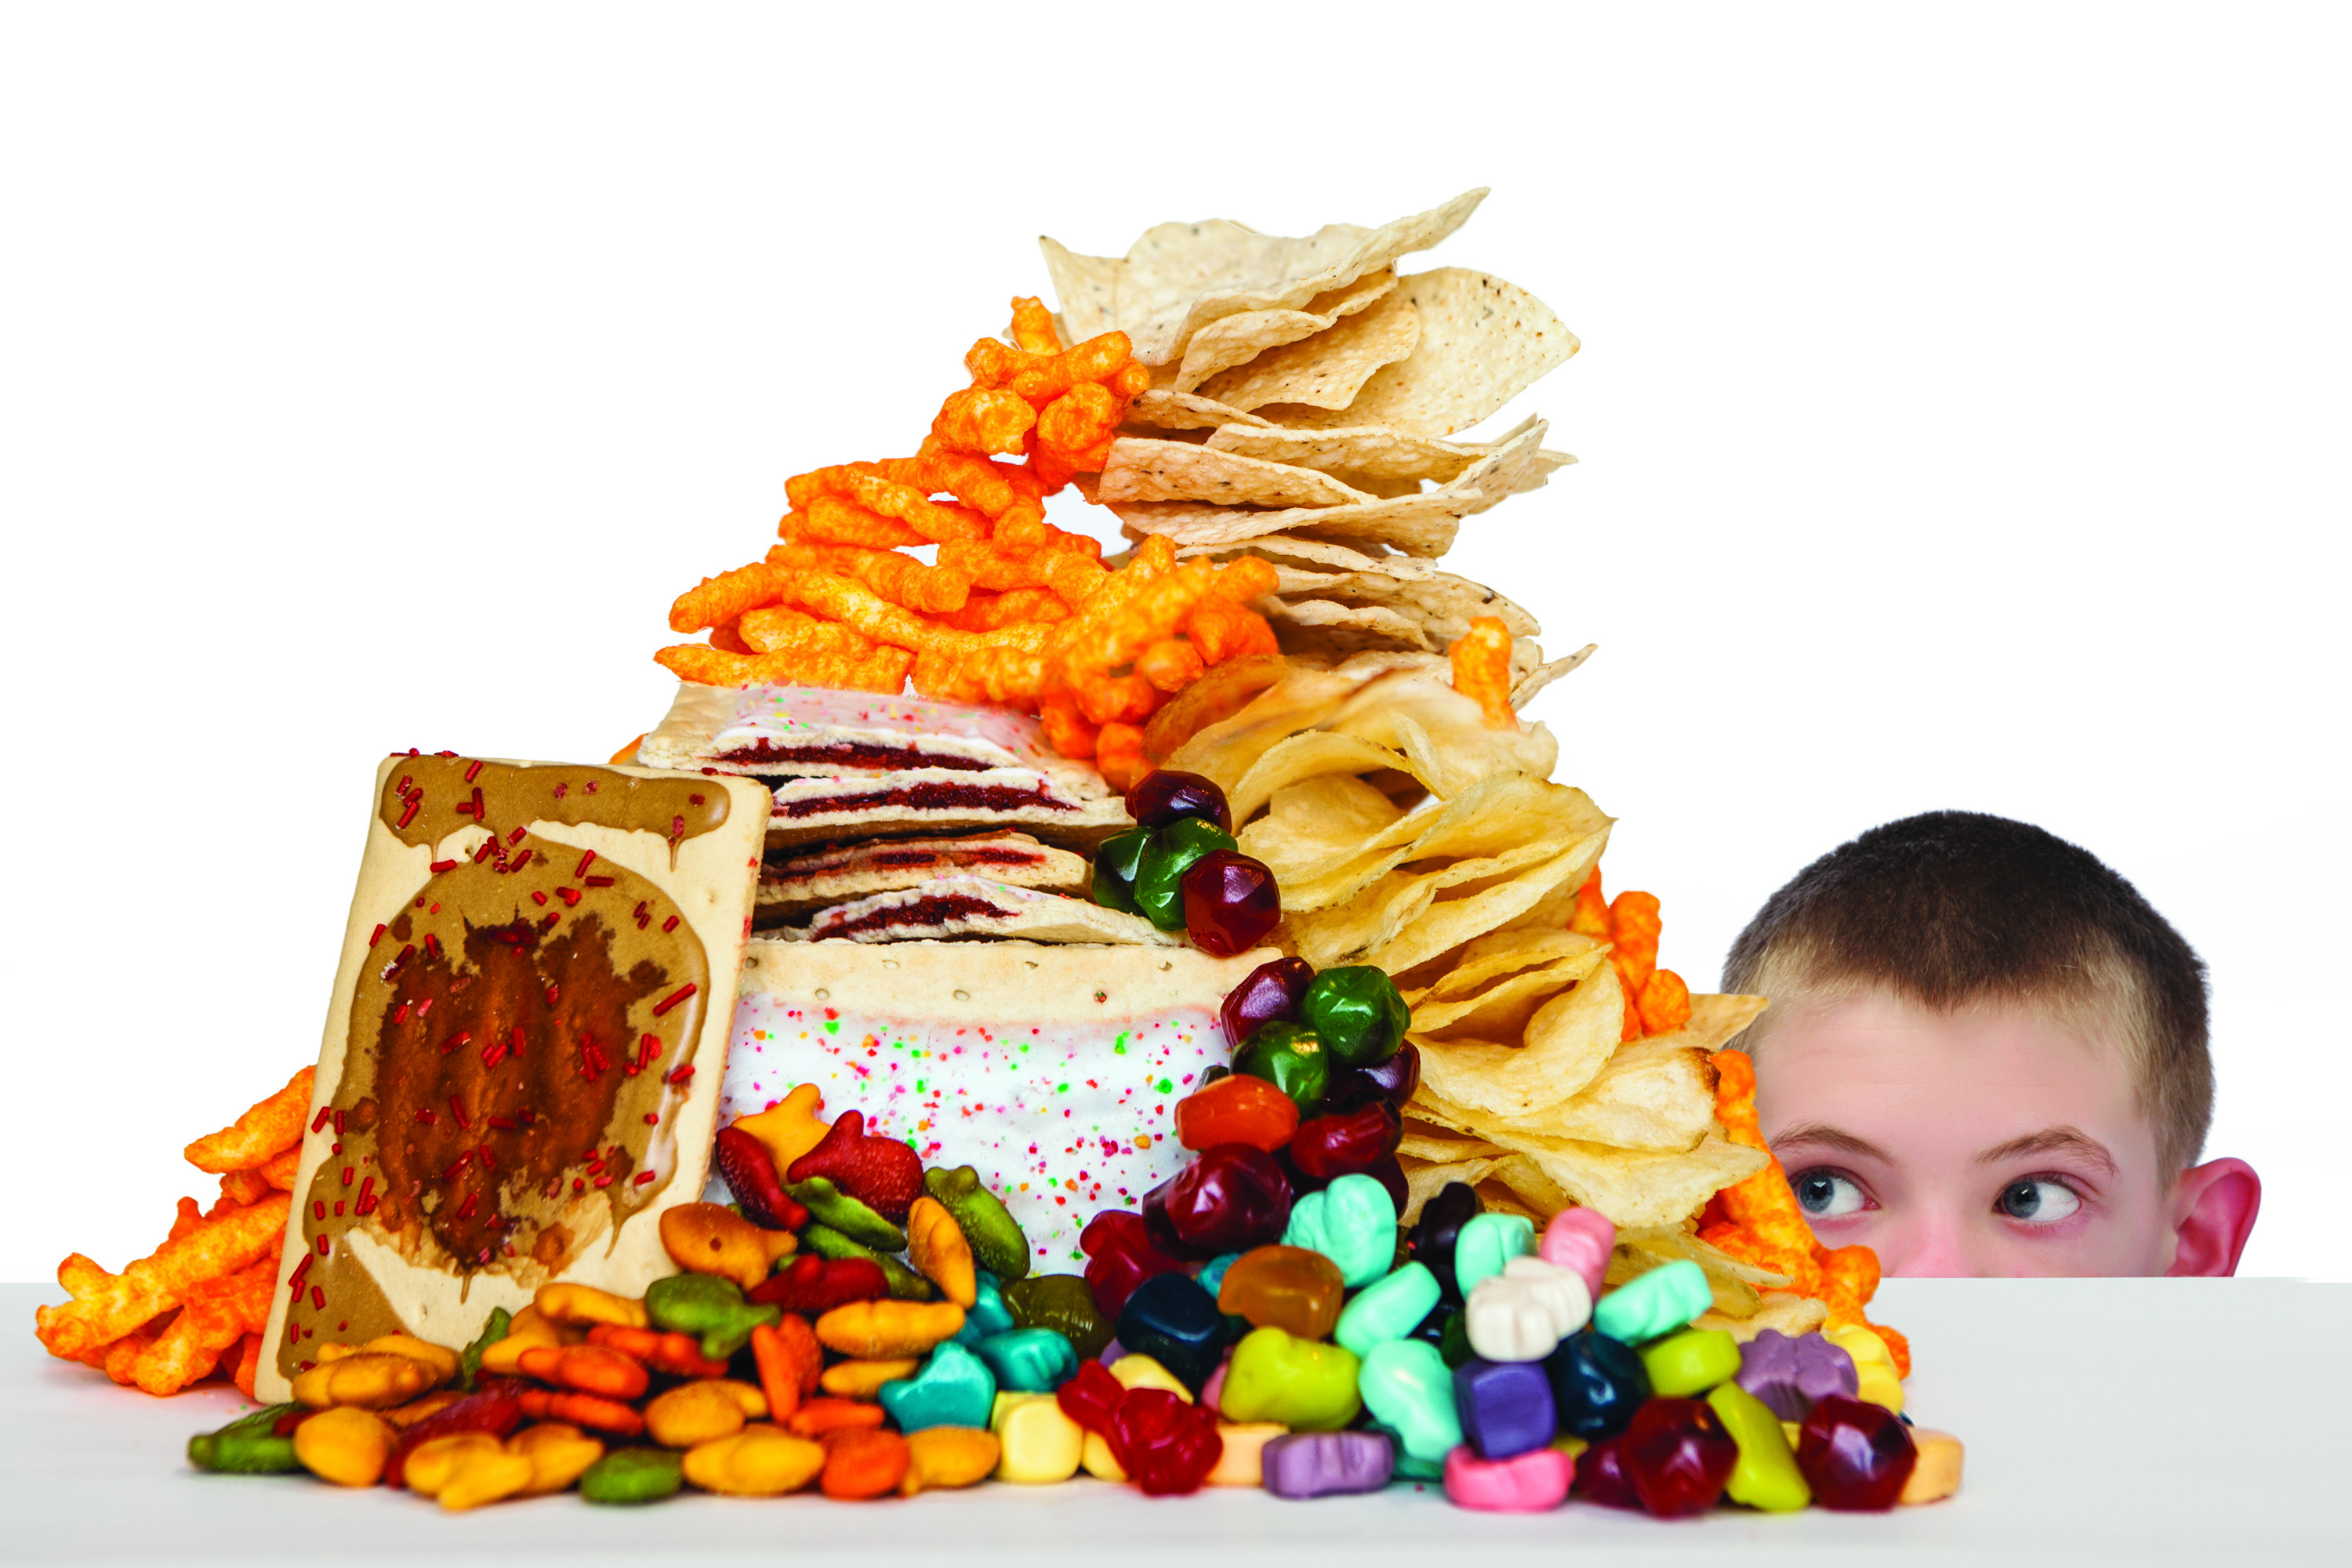 The Rudd Center Reports That Children Are Often Exposed To Unhealthy Snack Choices